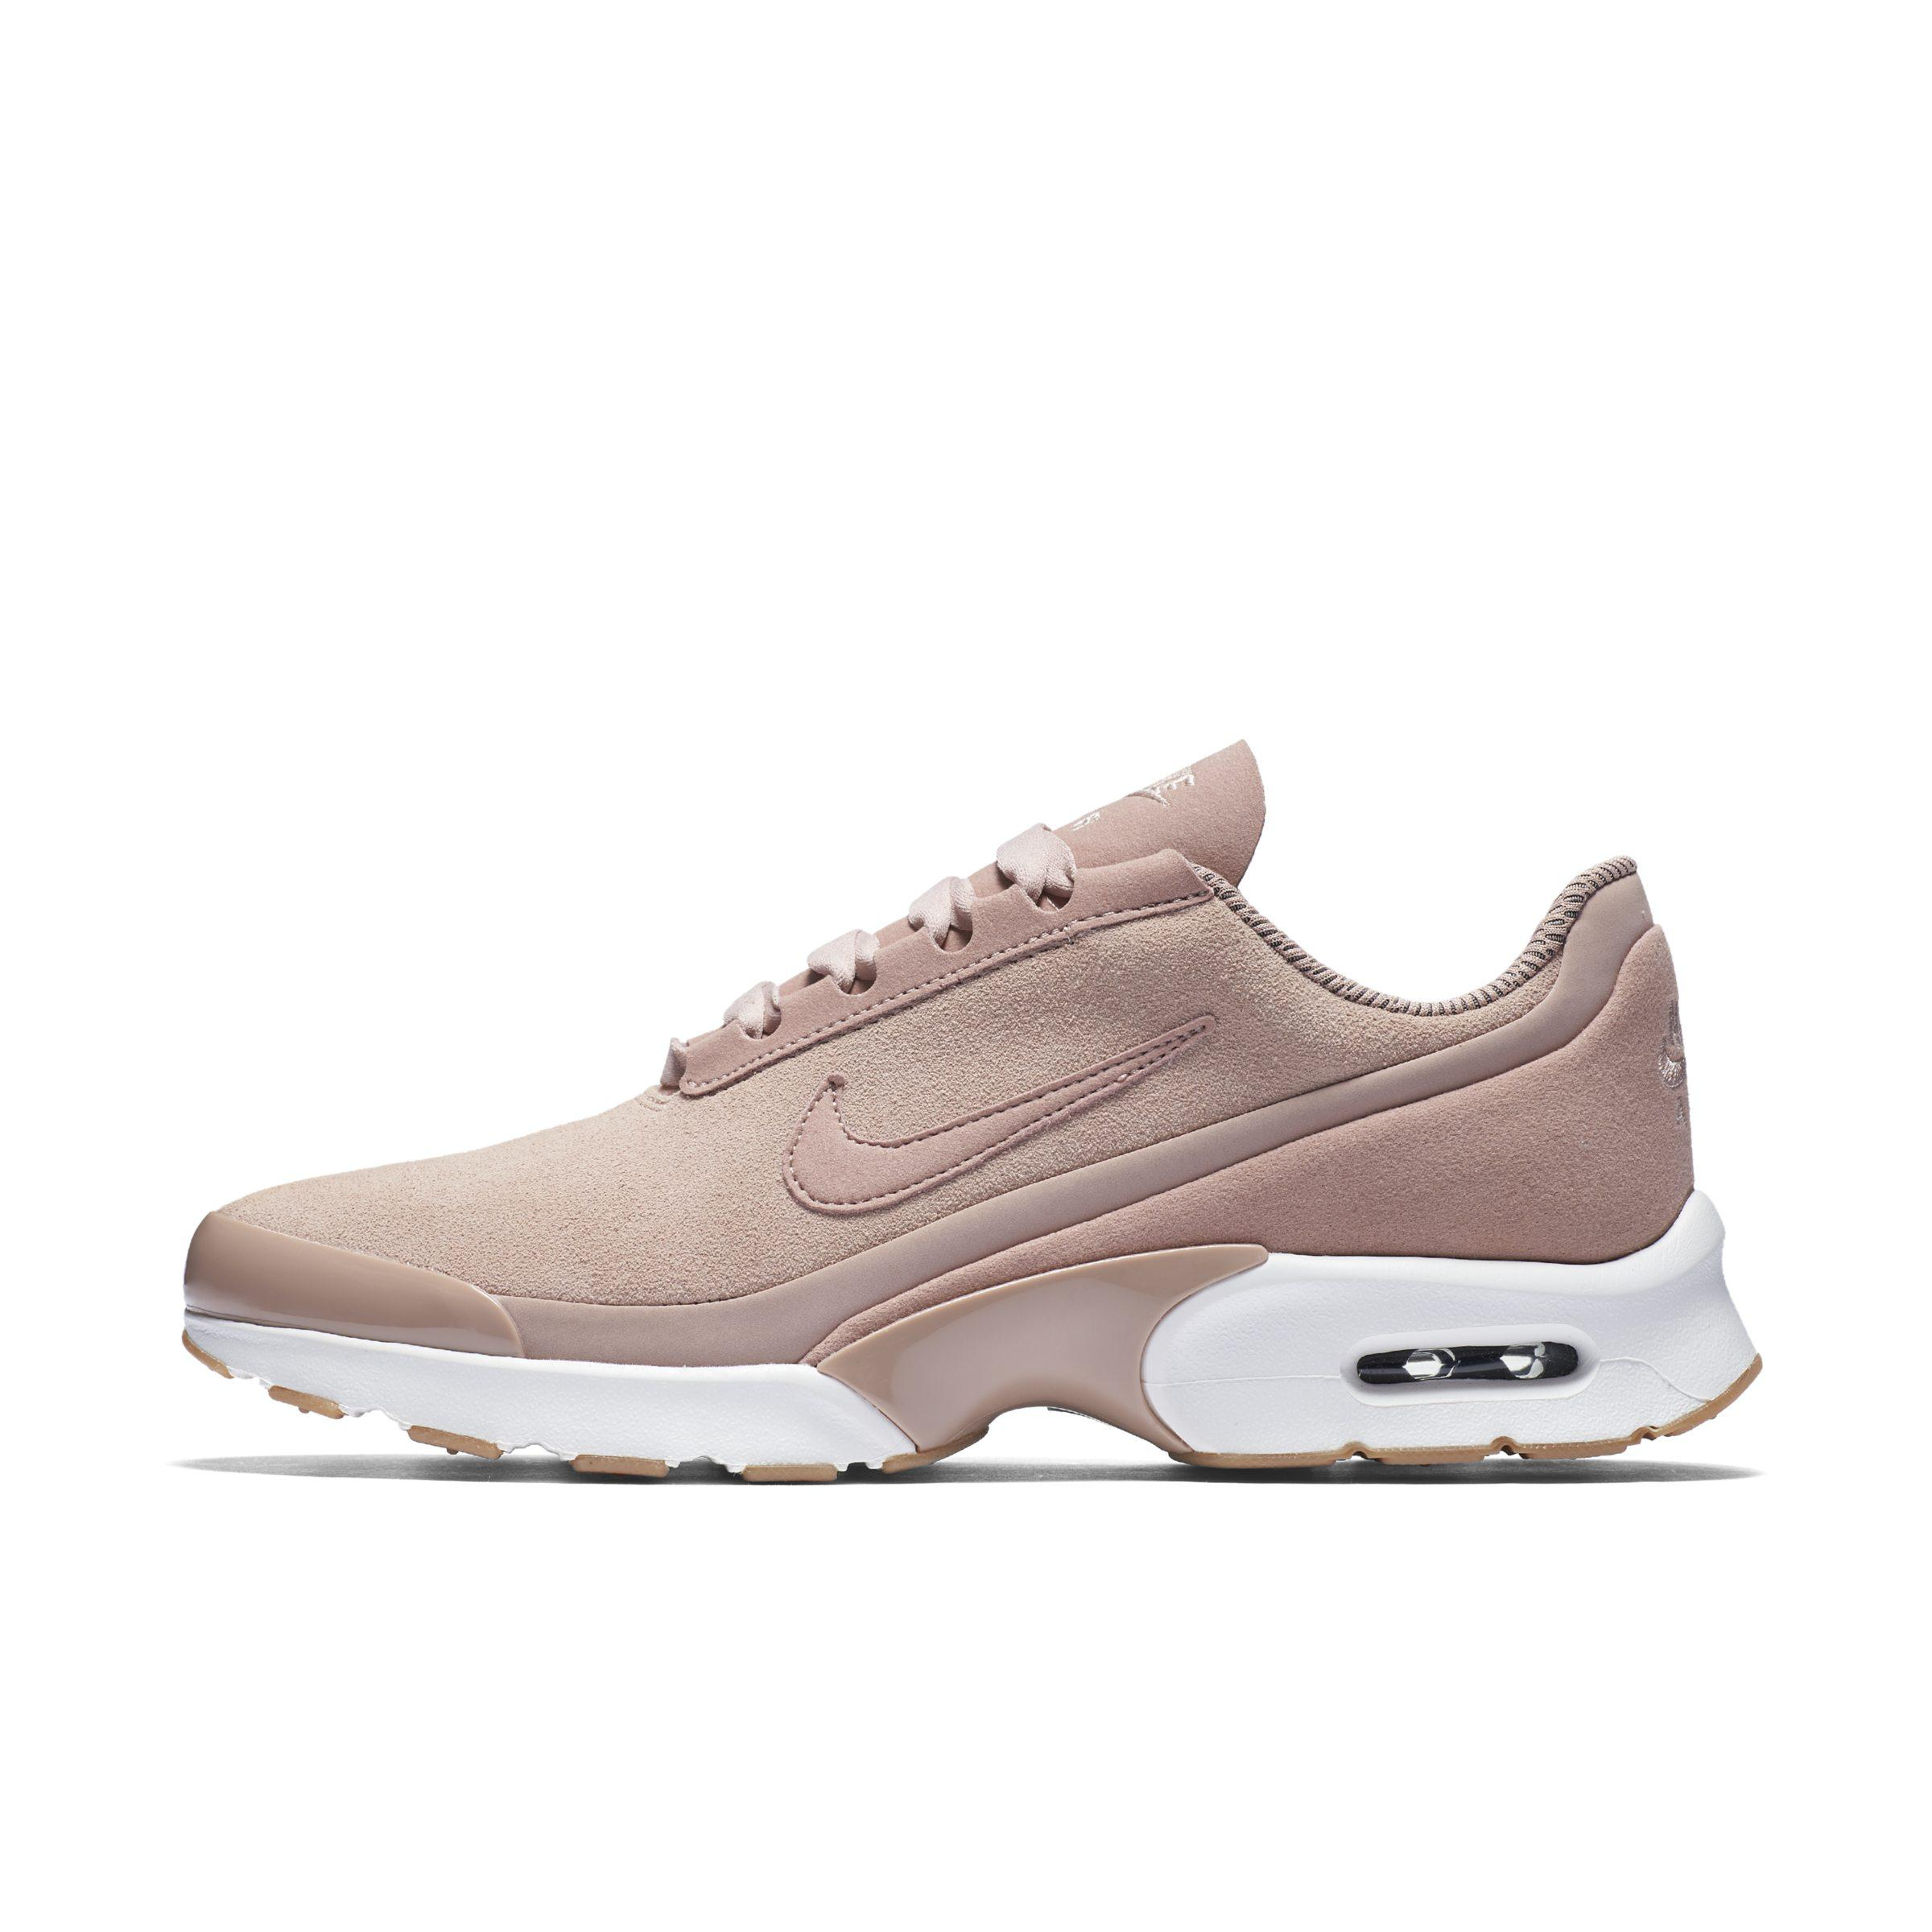 separation shoes 140ca 64425 Nike Air Max Jewell Se Shoe in Pink - Lyst